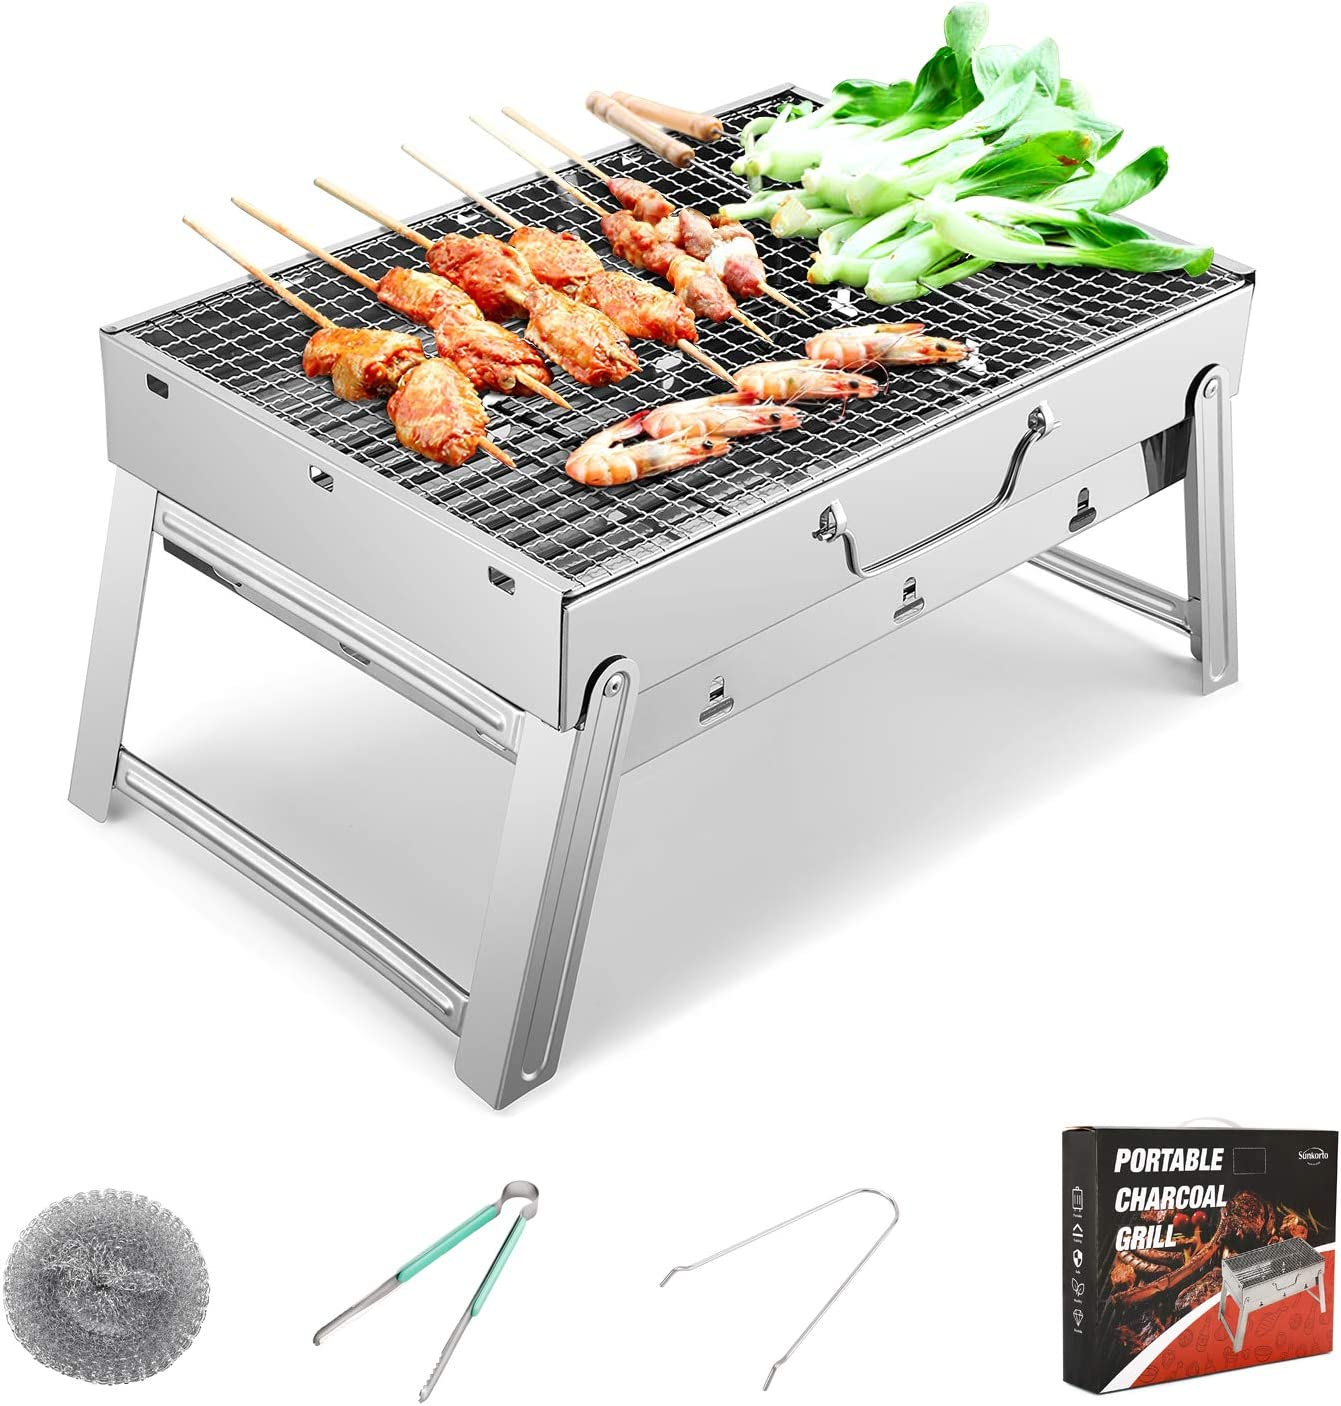 Sunkorto Portable Steel Charcoal Grill